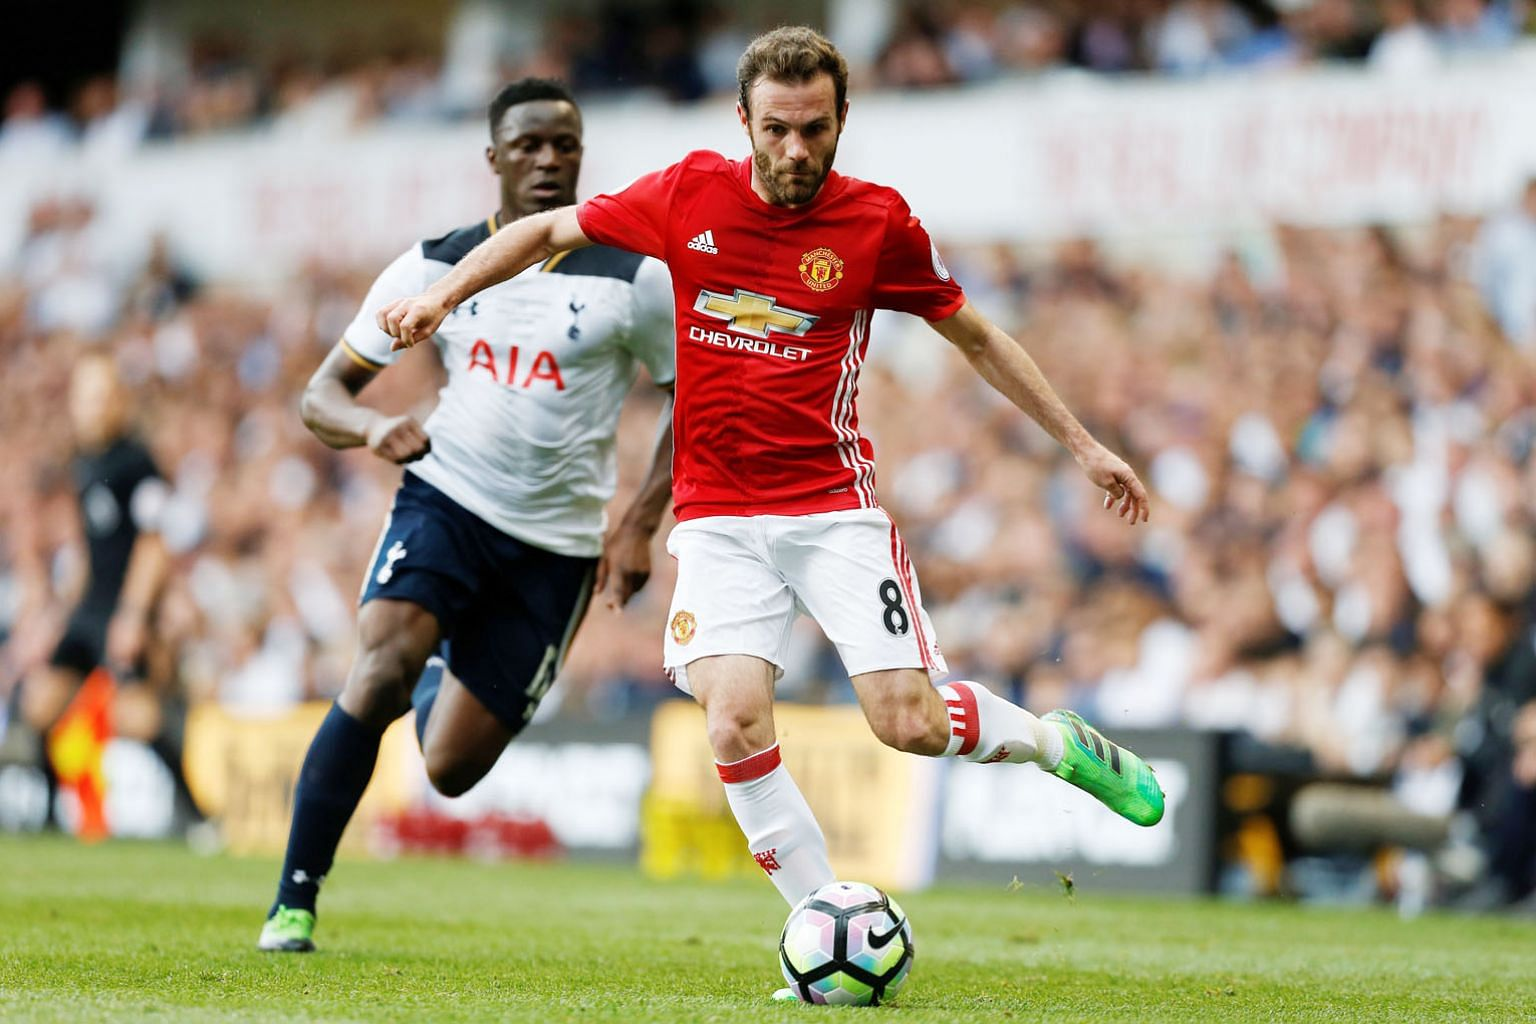 Spanish midfielder Juan Mata in action in the 1-2 loss to Tottenham last Sunday. He wants United to win their final two league games to be in the best shape to face Dutch side Ajax in the Europa League final next Wednesday.